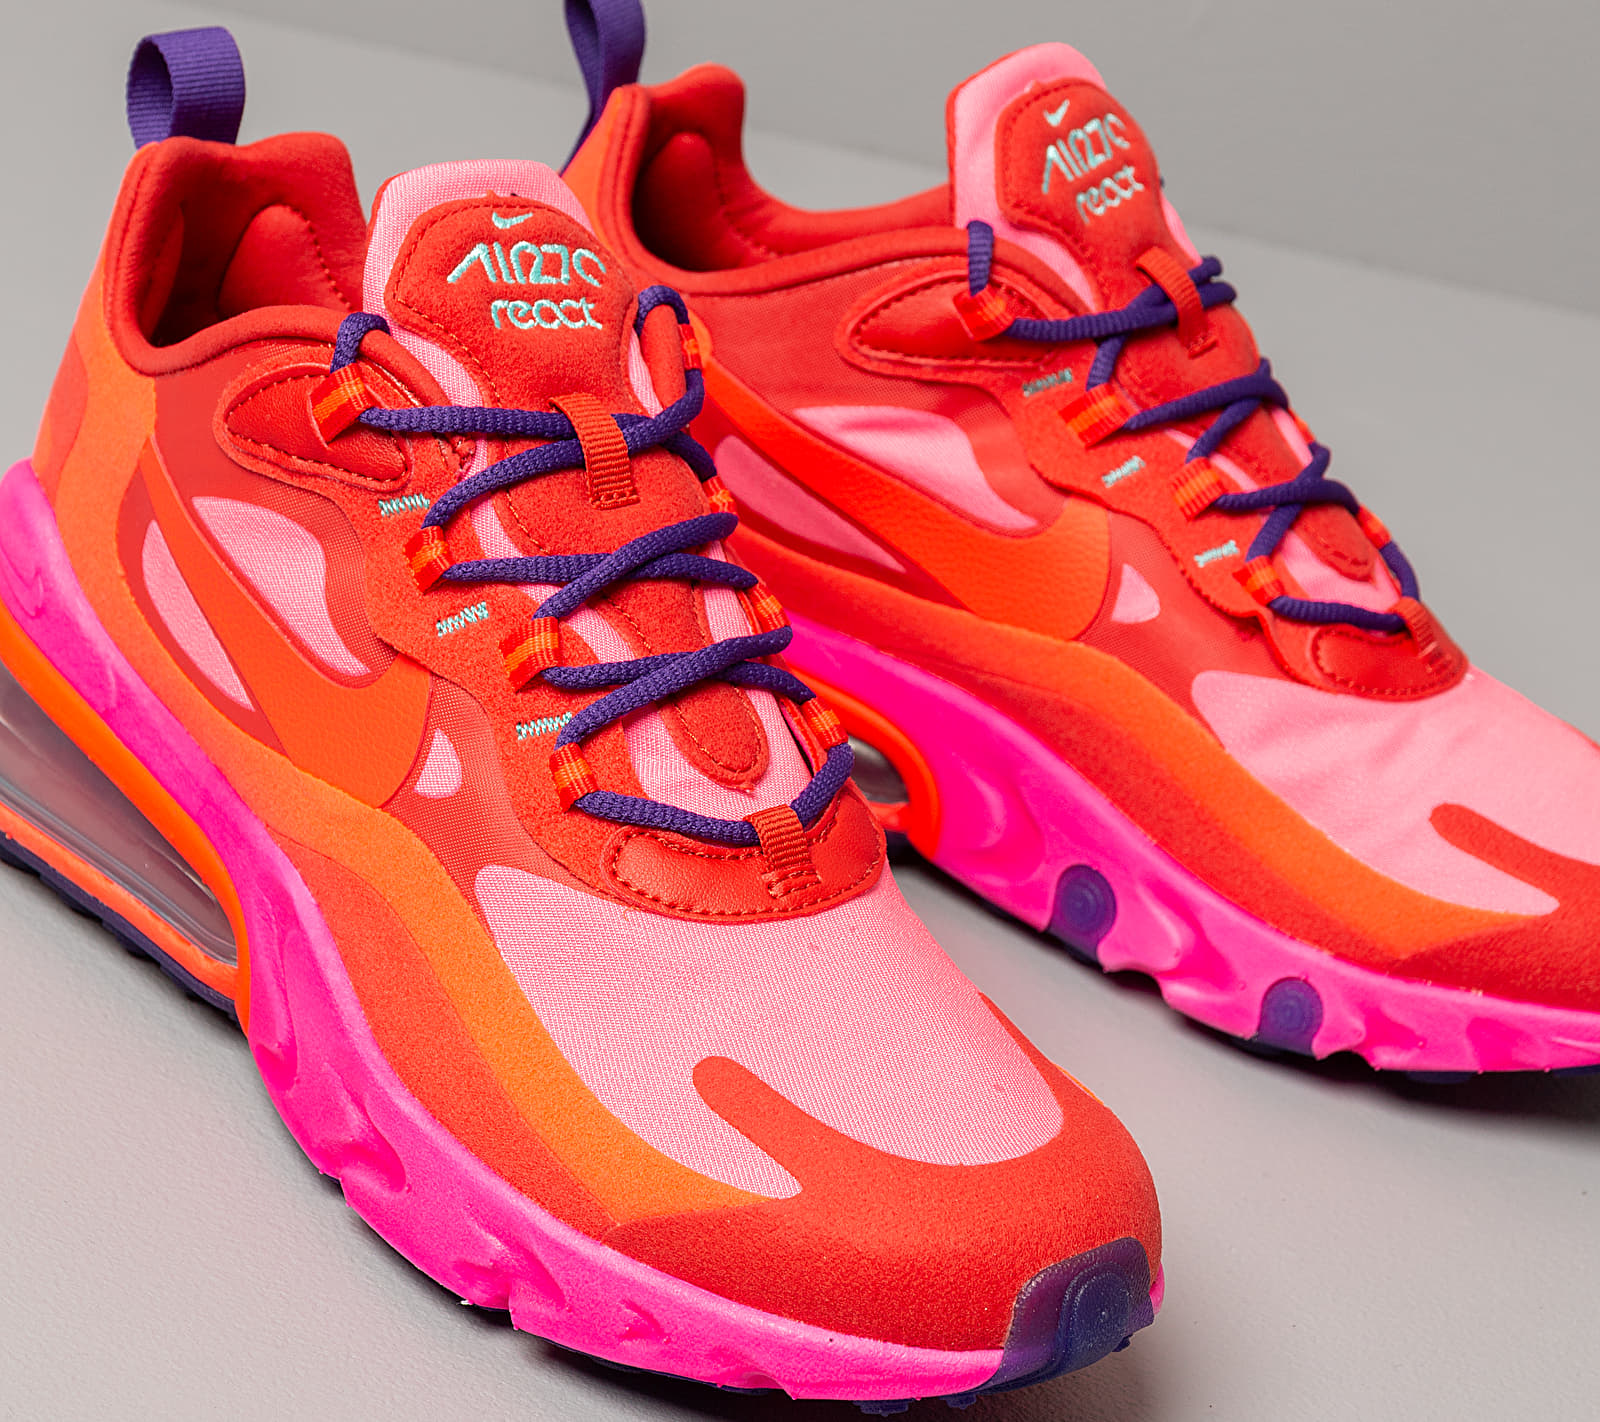 Nike W Air Max 270 React Mystic Red Bright Crimson Pink Blast Buy At The Price Of 147 00 In Footshop Eu Imall Com